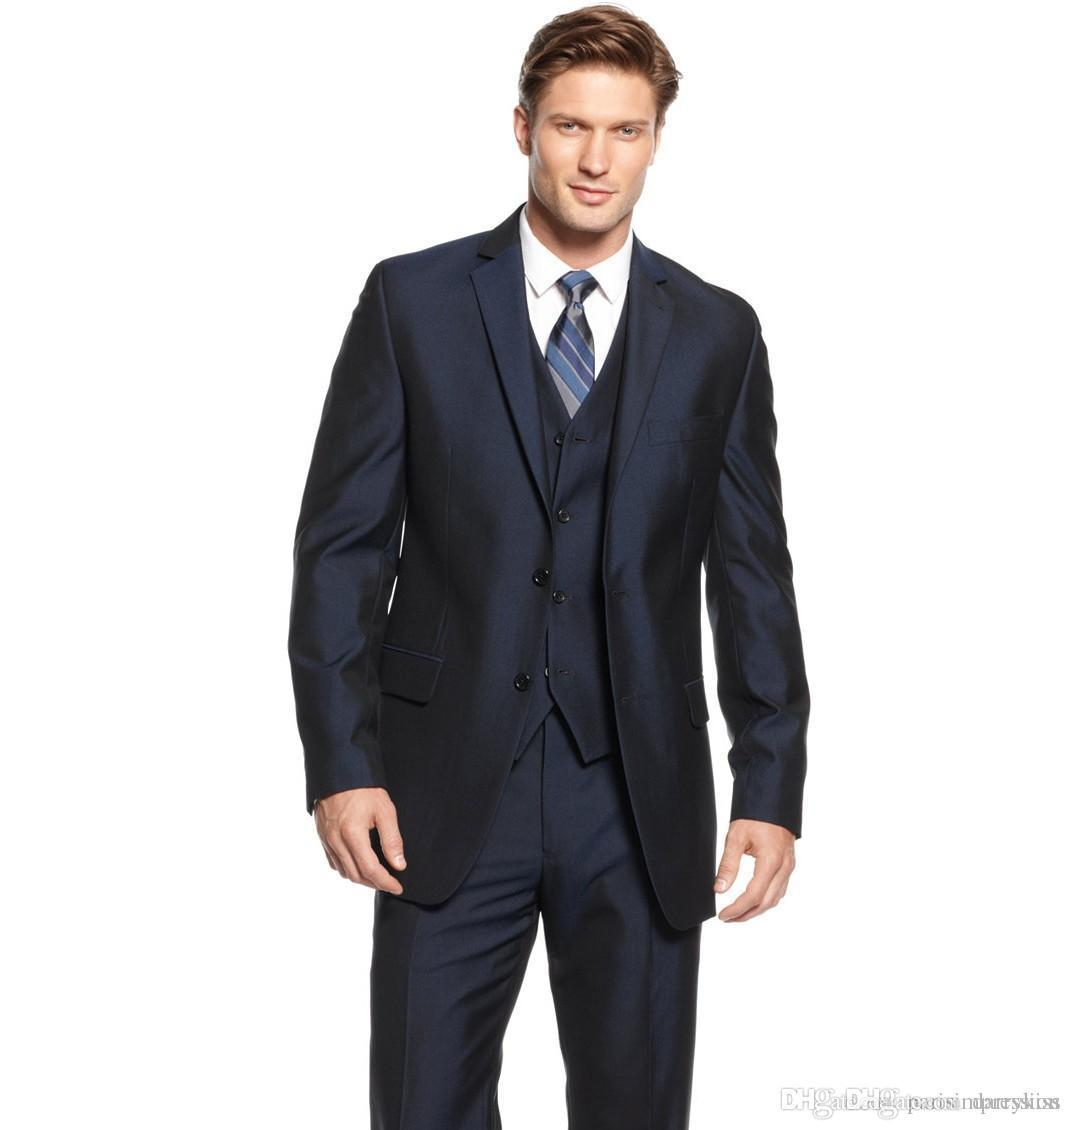 Navy, Men's Wedding Wear Photos in All Areas. Photos Albums. Filters. Apply. Clear. Colors Any. Glam Couple in Ivory Wedding Dress and Navy Blue Suit. Strapless Lace Trumpet Dress and Navy Suit. Elegant Navy Ermenegildo Zegna Suit. Bohemian Bo & Luca Wedding Dress. Chic Modern Gray and Navy Suits.